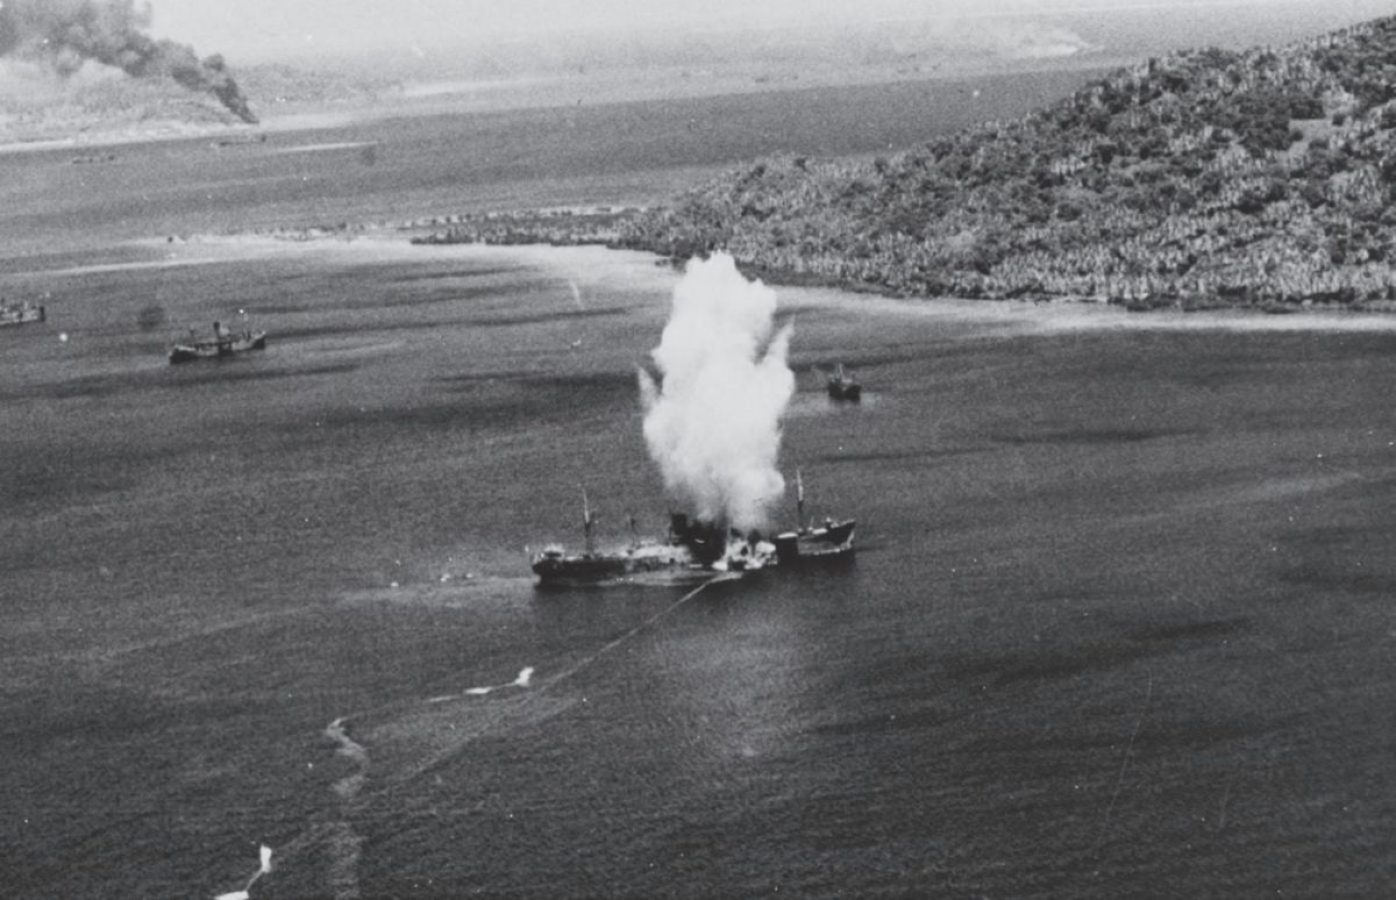 """Much preferred, if possible, over fighting bloody battles for fortified Japanese islands was to bypass them entirely, isolate them by air and sea blockade, and let them """"wither on the vine"""" as in the case of the Japanese bastions on Rabaul and Truk. Here a torpedo hits a Japanese cargo ship during the first day of U.S. Navy carrier air raids on Truk, Feb. 17, 1944. U.S. Marine Corps Photo"""